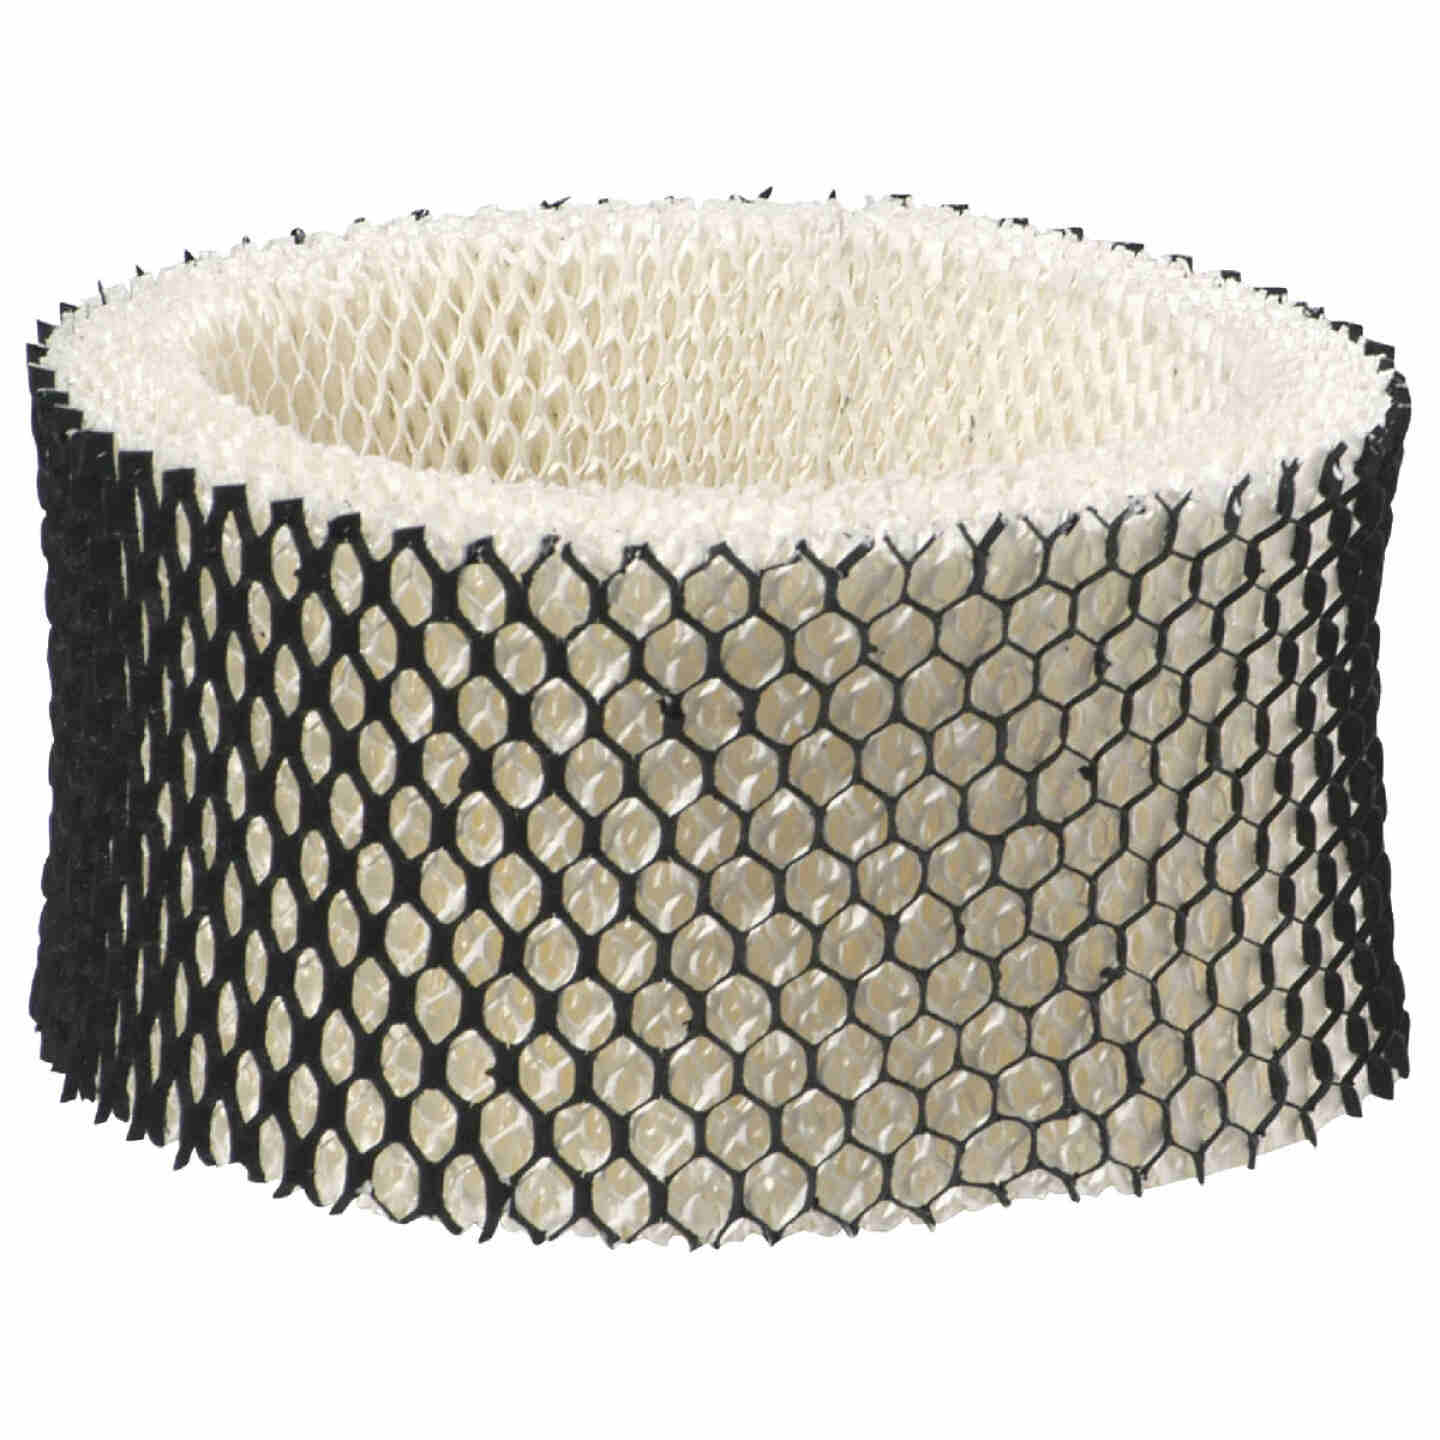 Holmes Type A Humidifier Wick Filter Image 1